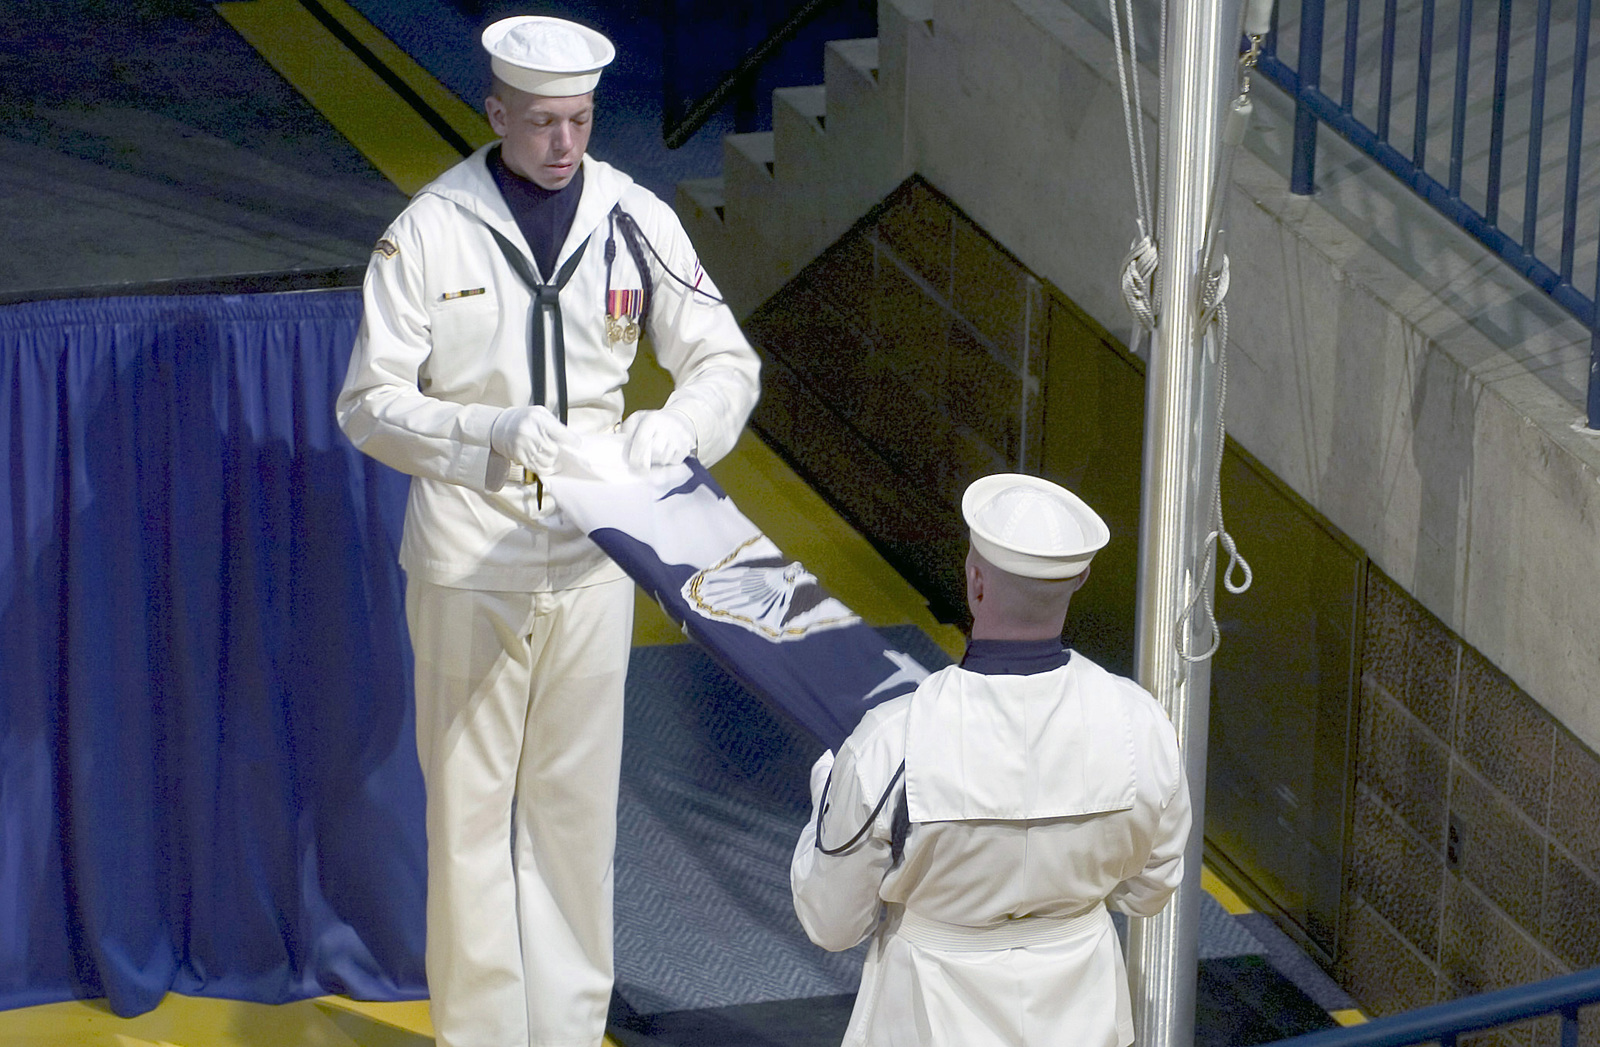 US Navy (USN) Sailors assigned to the Ceremonial Honor Guard Team fold the retired Flag for CHIEF of Naval Operations (CNO) Admiral (ADM) Vern Clark (Retired), during a late-morning ceremony at the US Naval Academy, at Annapolis, Maryland